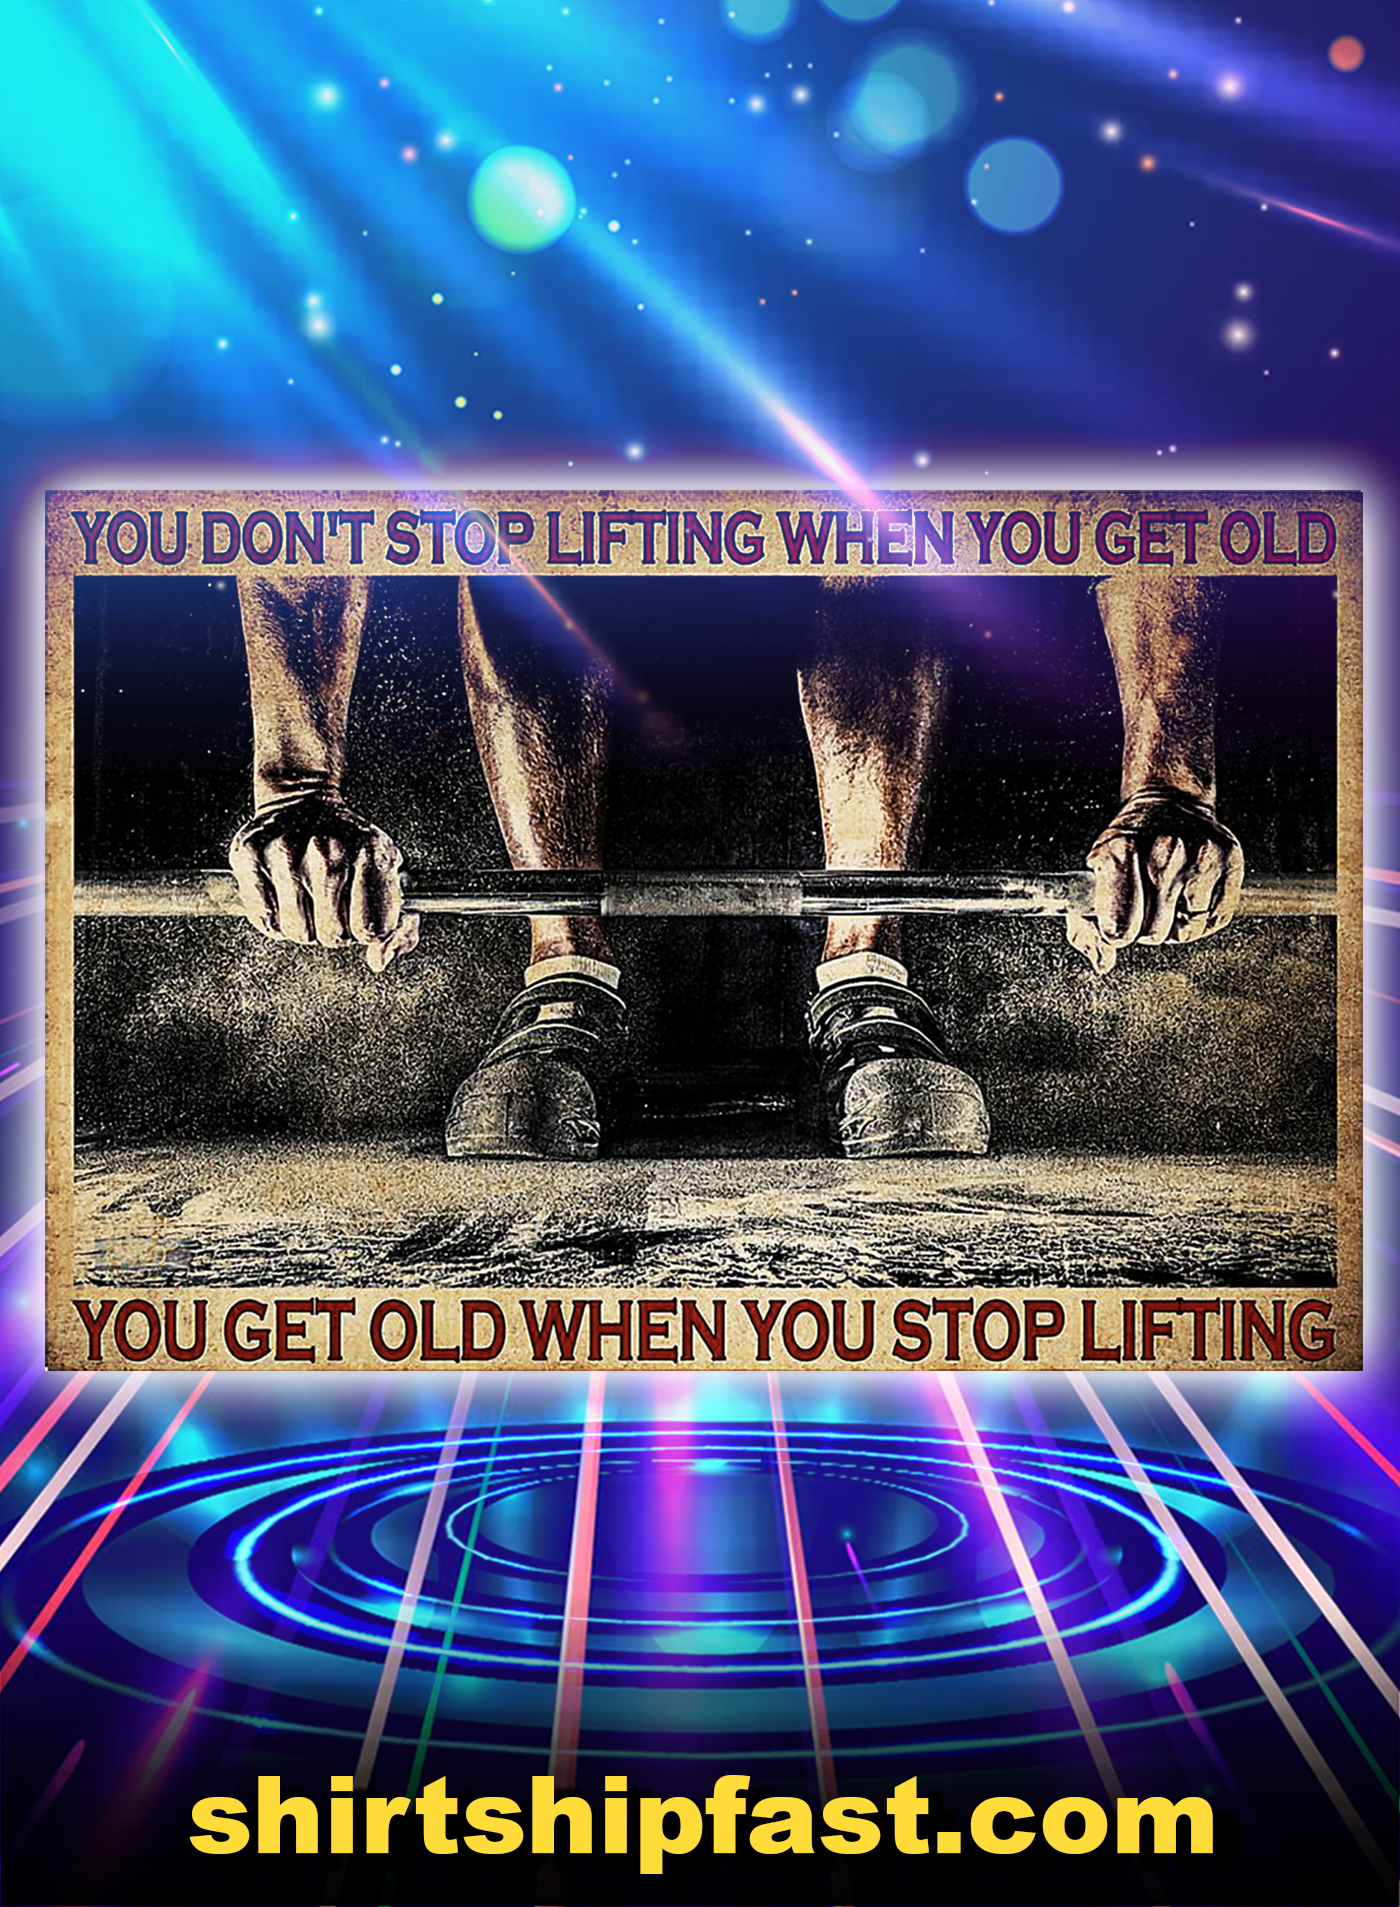 Poster Fitness you don't stop lifting when you get old - A1